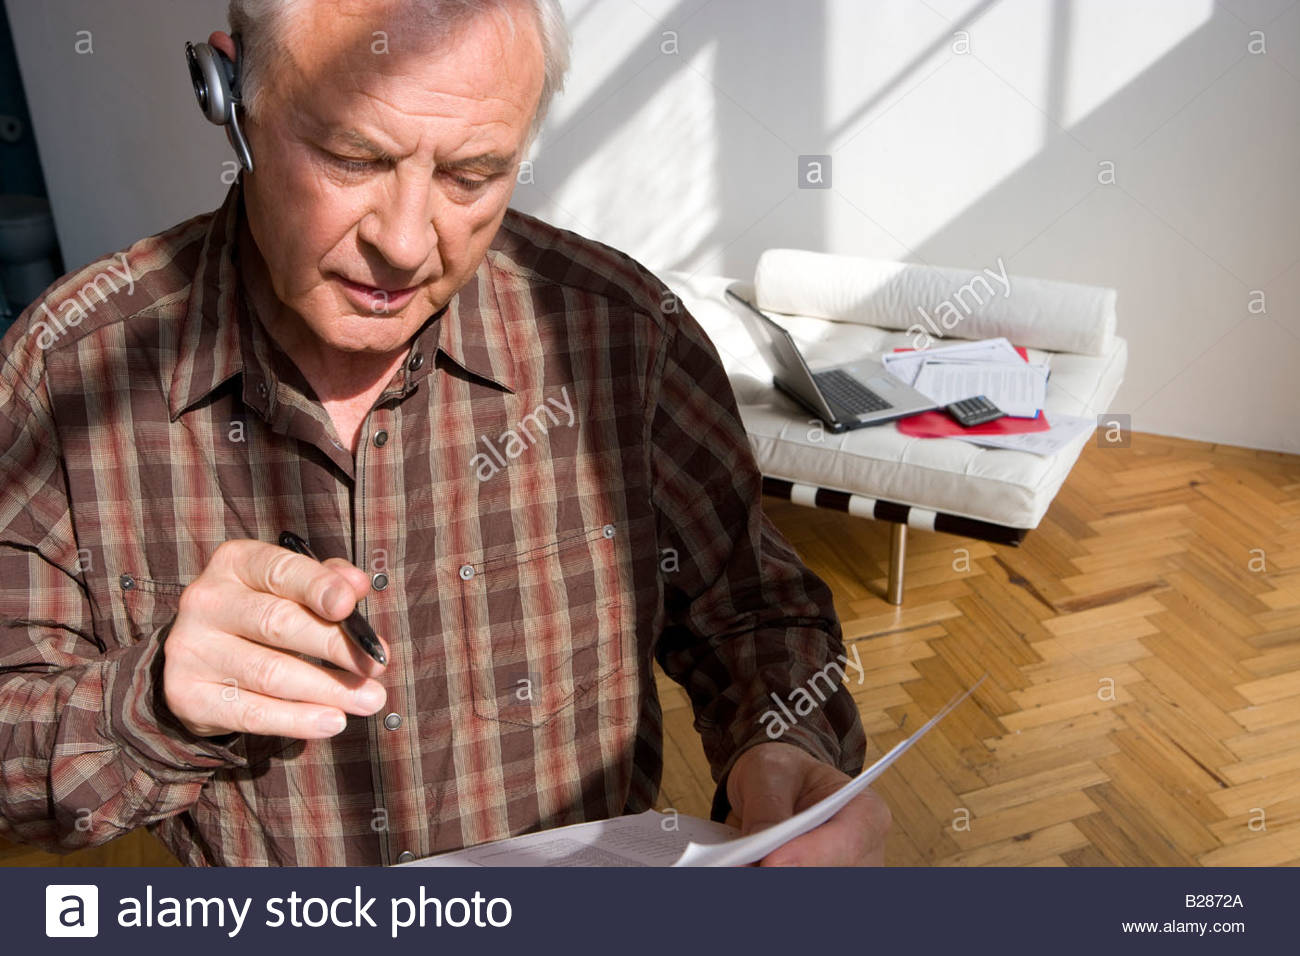 Senior man with paperwork and hands-free device - Stock Image